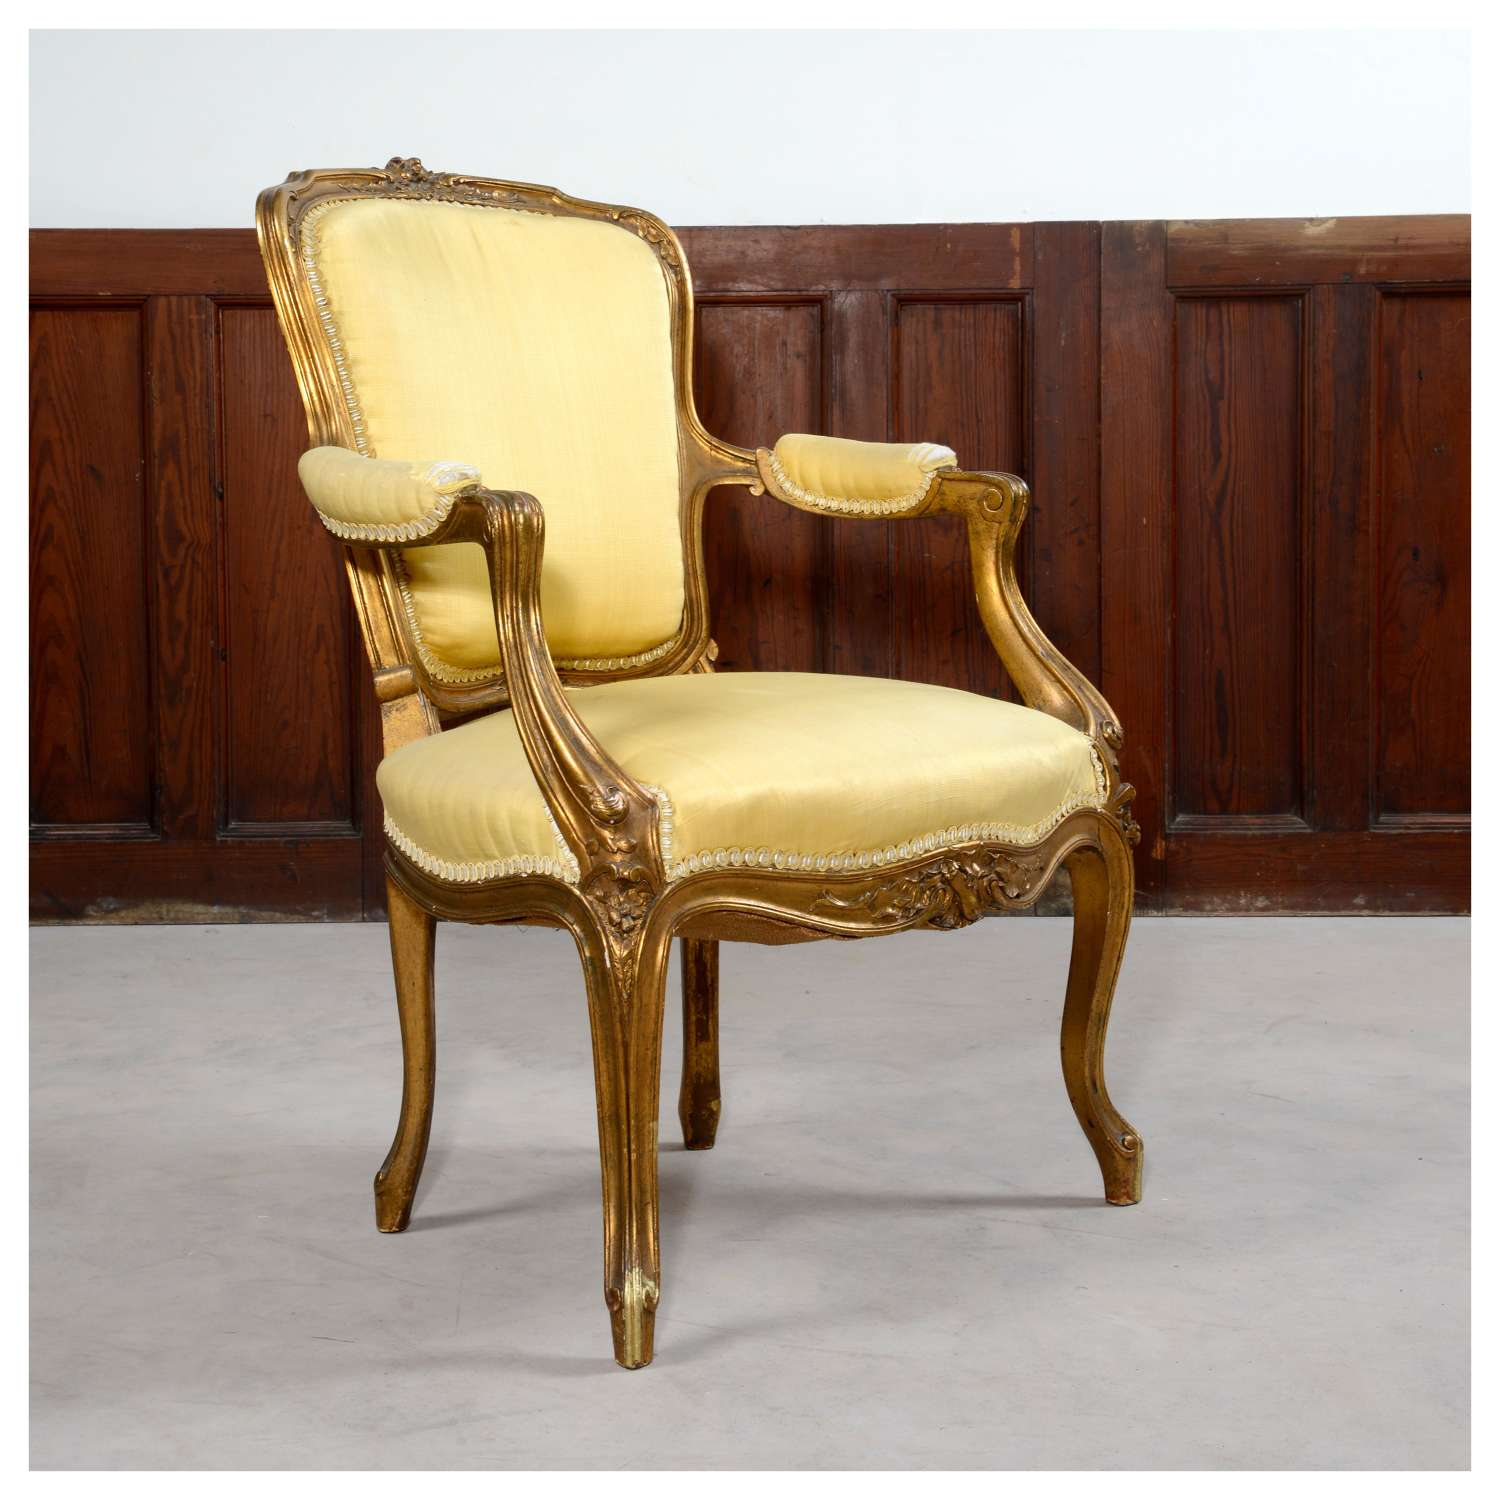 French Louis XV style gilt armchair, or fauteuil